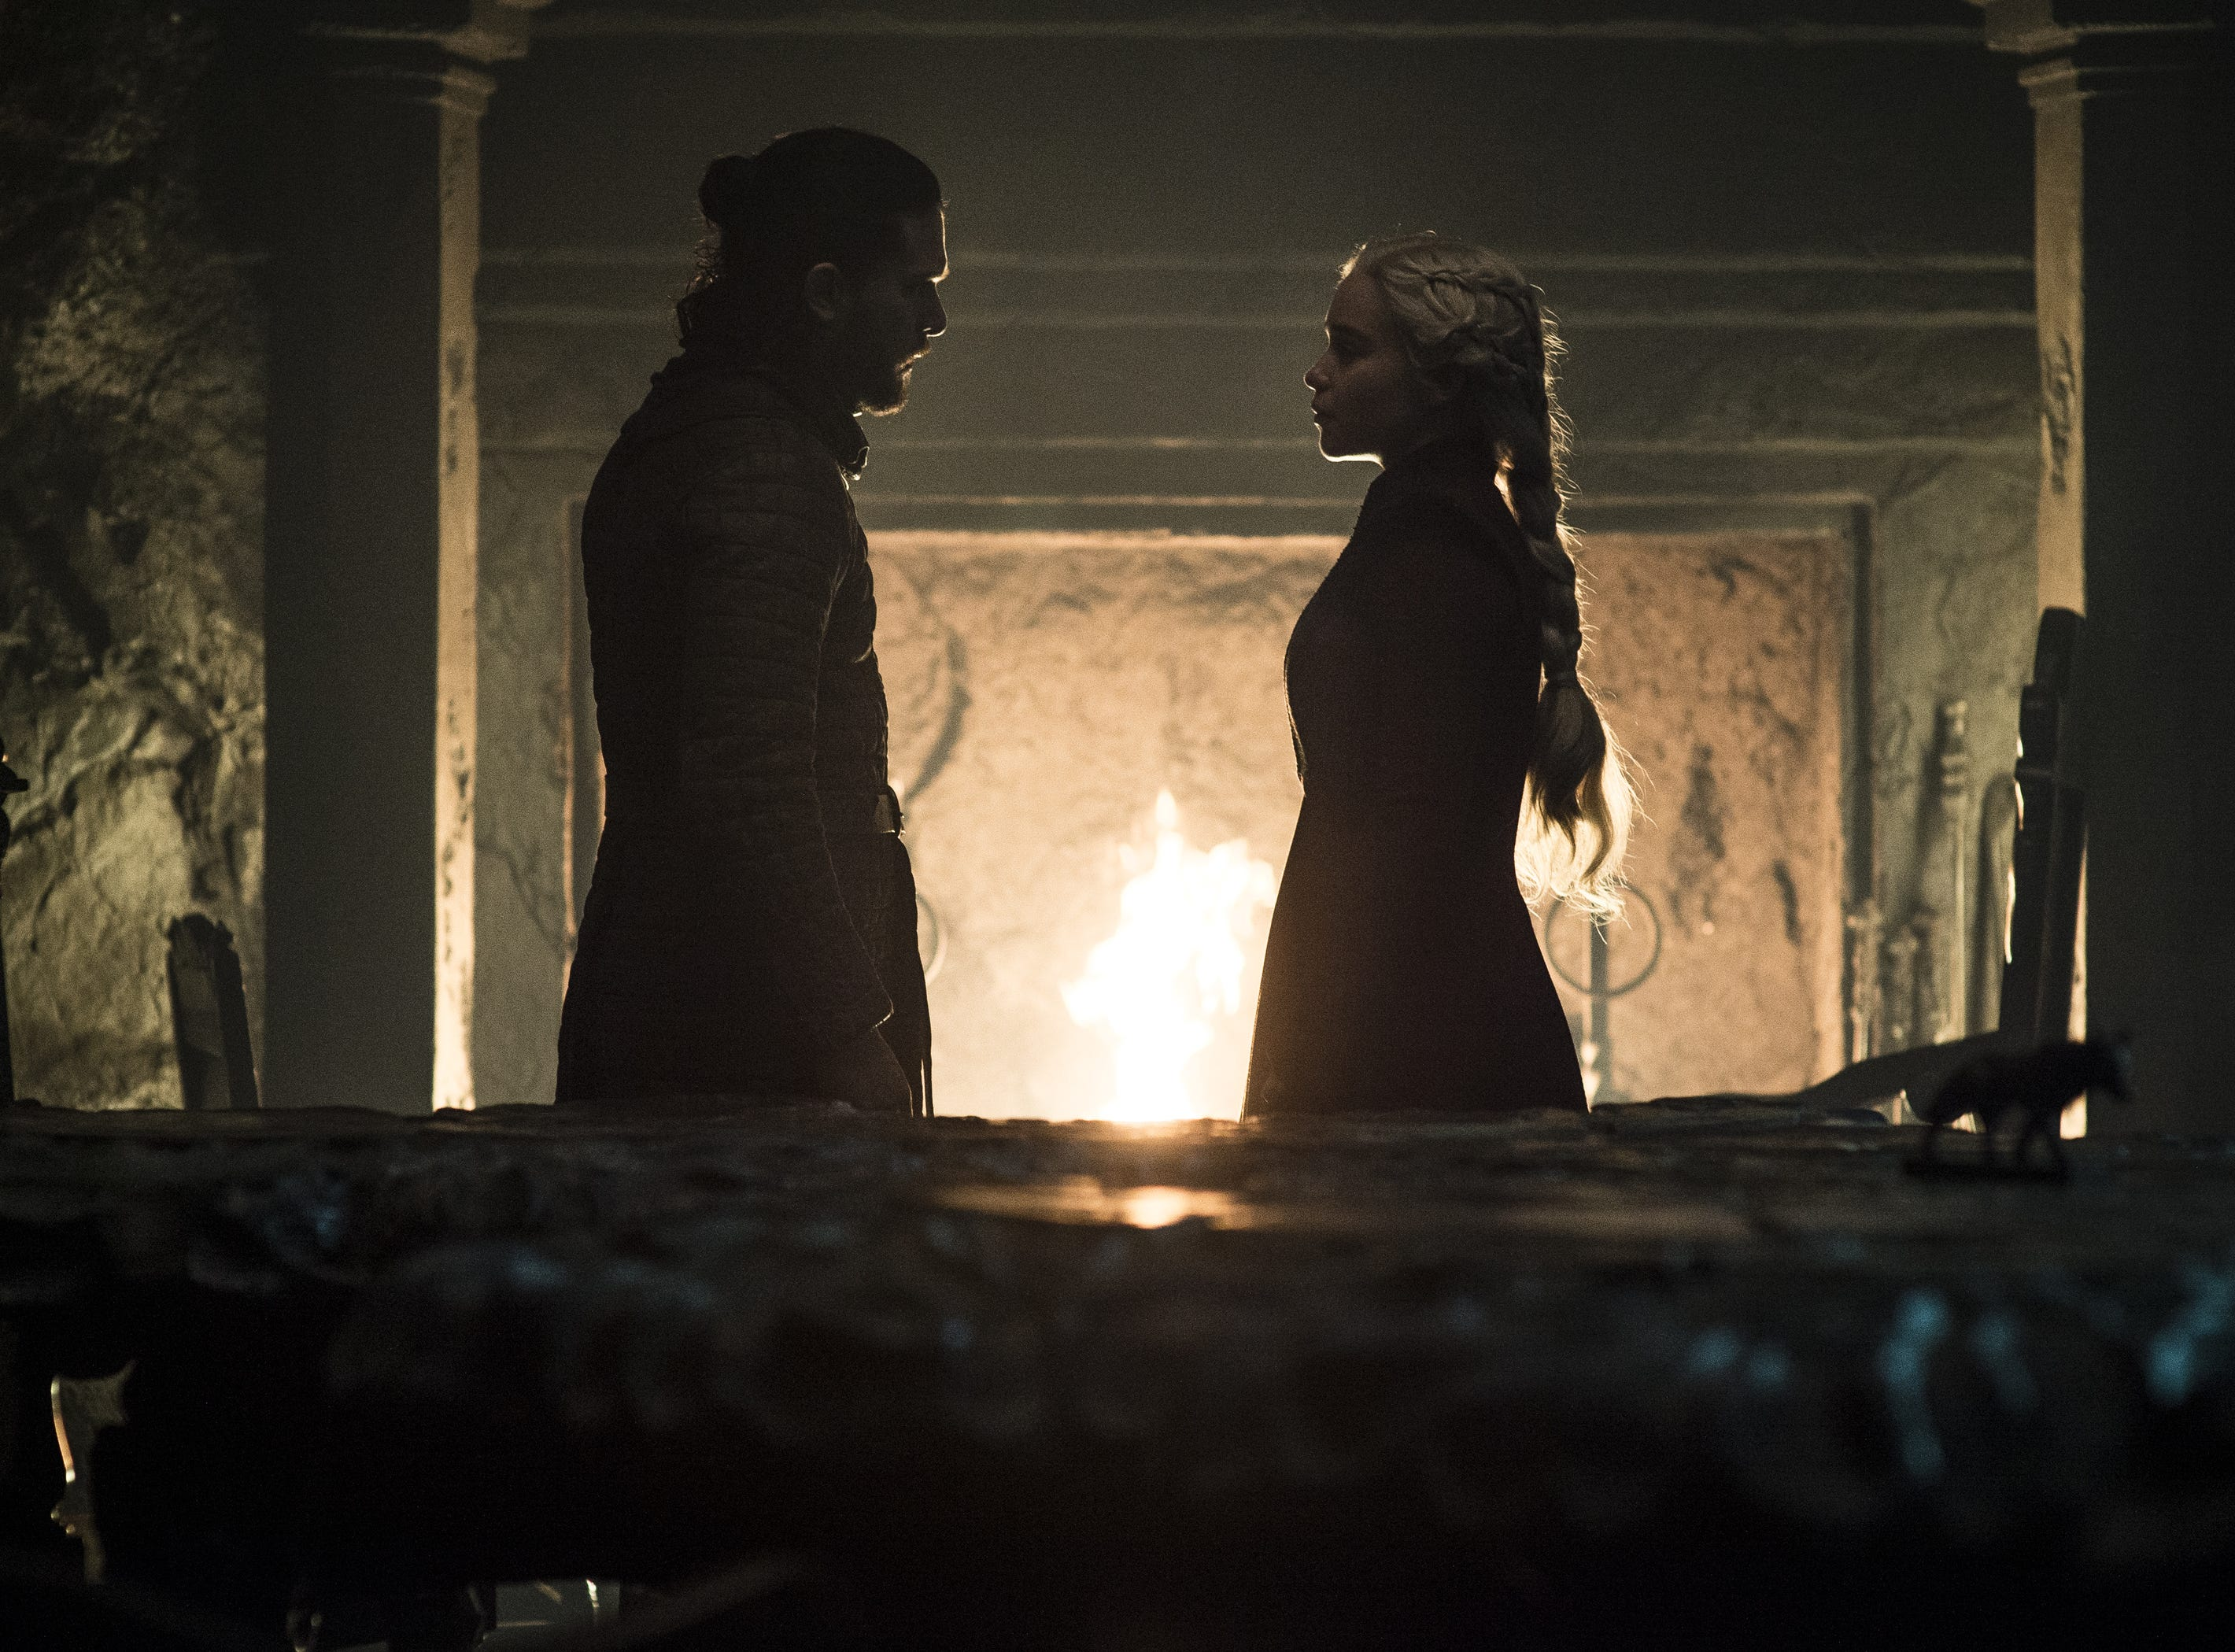 Jon Snow (Kit Harington), left, has lost his ability to persuade his queen, Daenerys Targaryen (Emilia Clarke), in the second-to-last episode of 'Game of Thrones.'